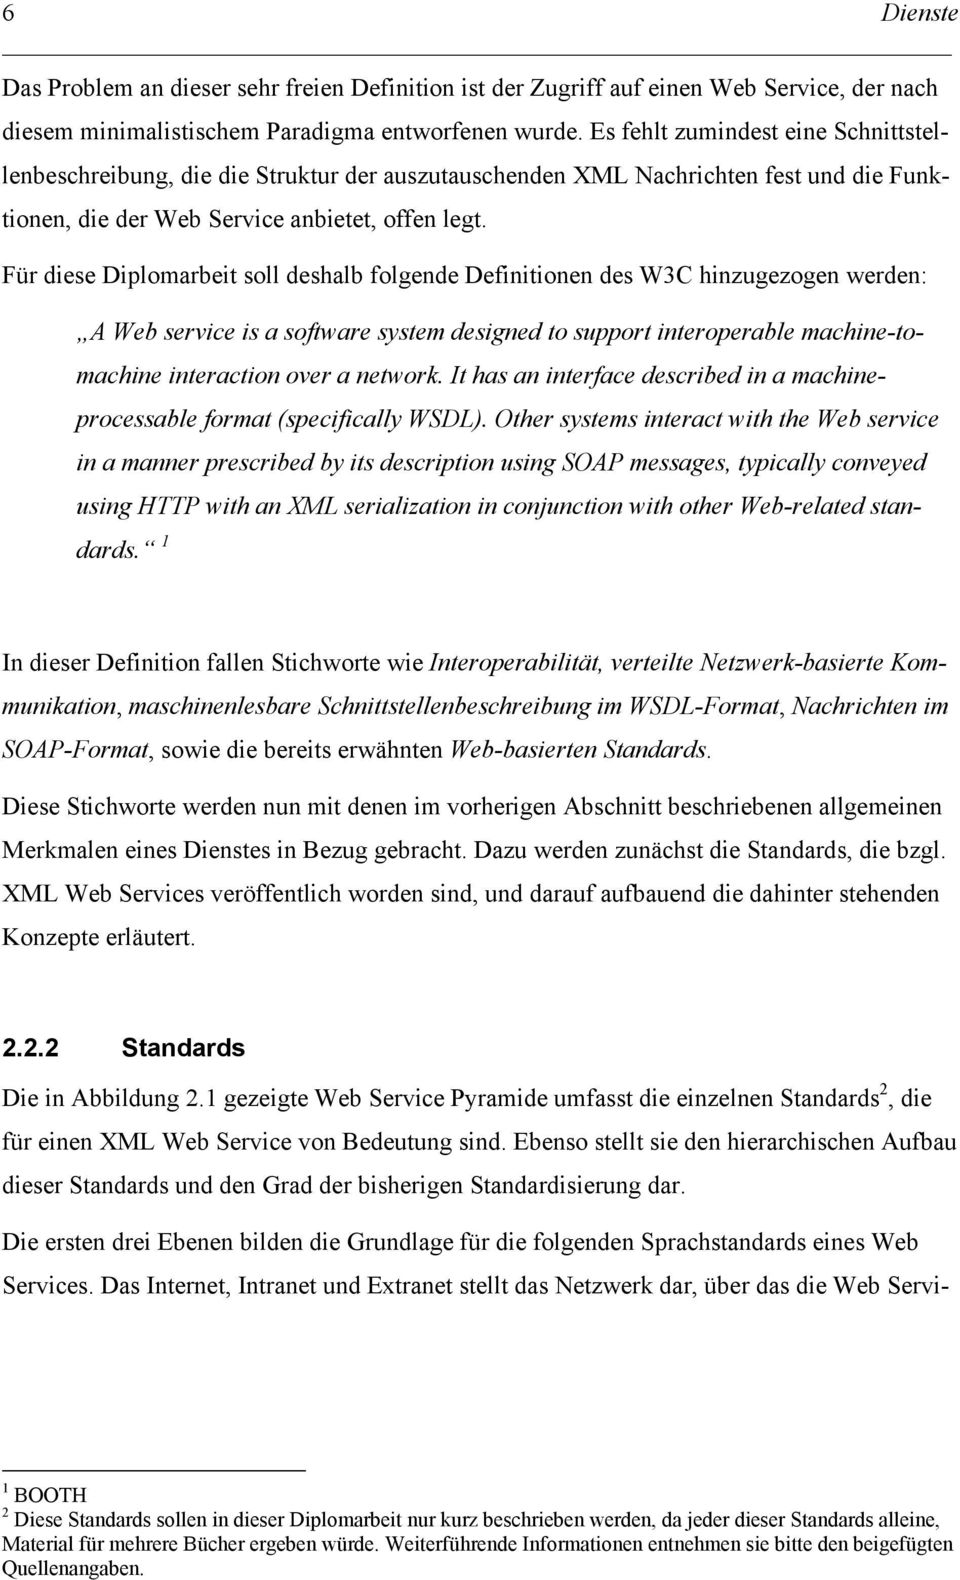 Für diese Diplomarbeit soll deshalb folgende Definitionen des W3C hinzugezogen werden: A Web service is a software system designed to support interoperable machine-tomachine interaction over a